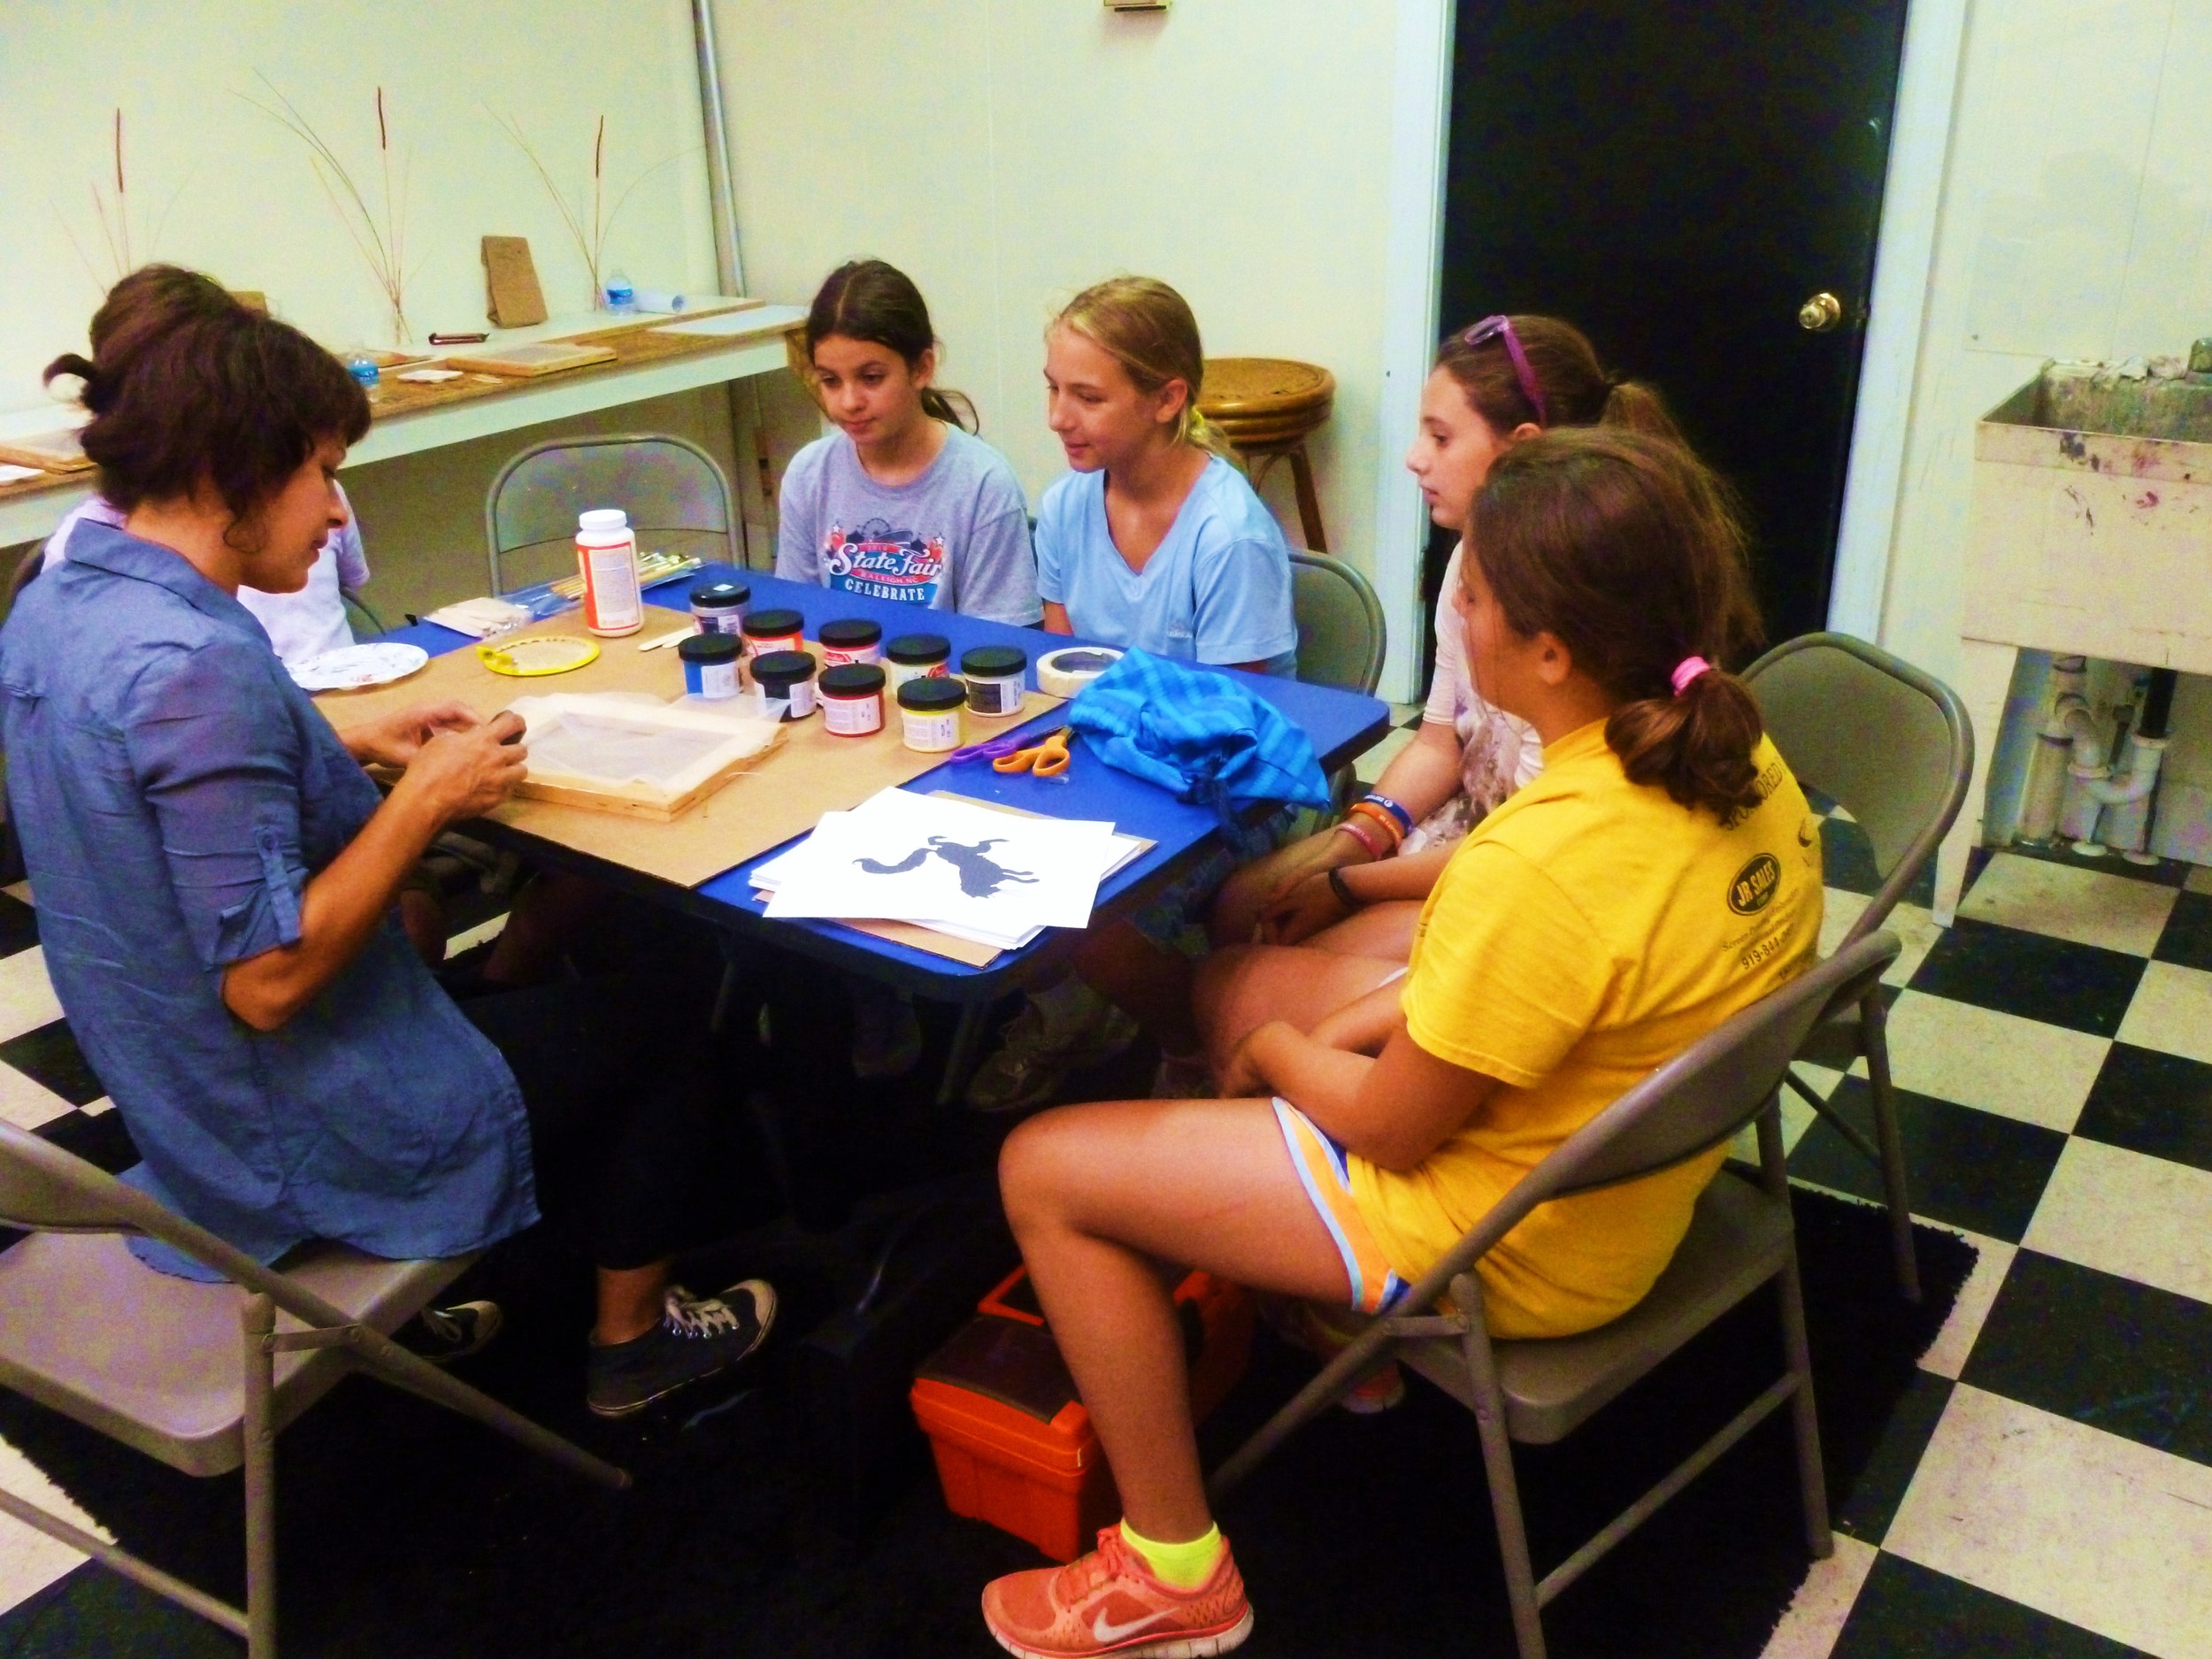 We had camps for Wearable Art, Mixed Media, Altered Books and Painting and Drawing.